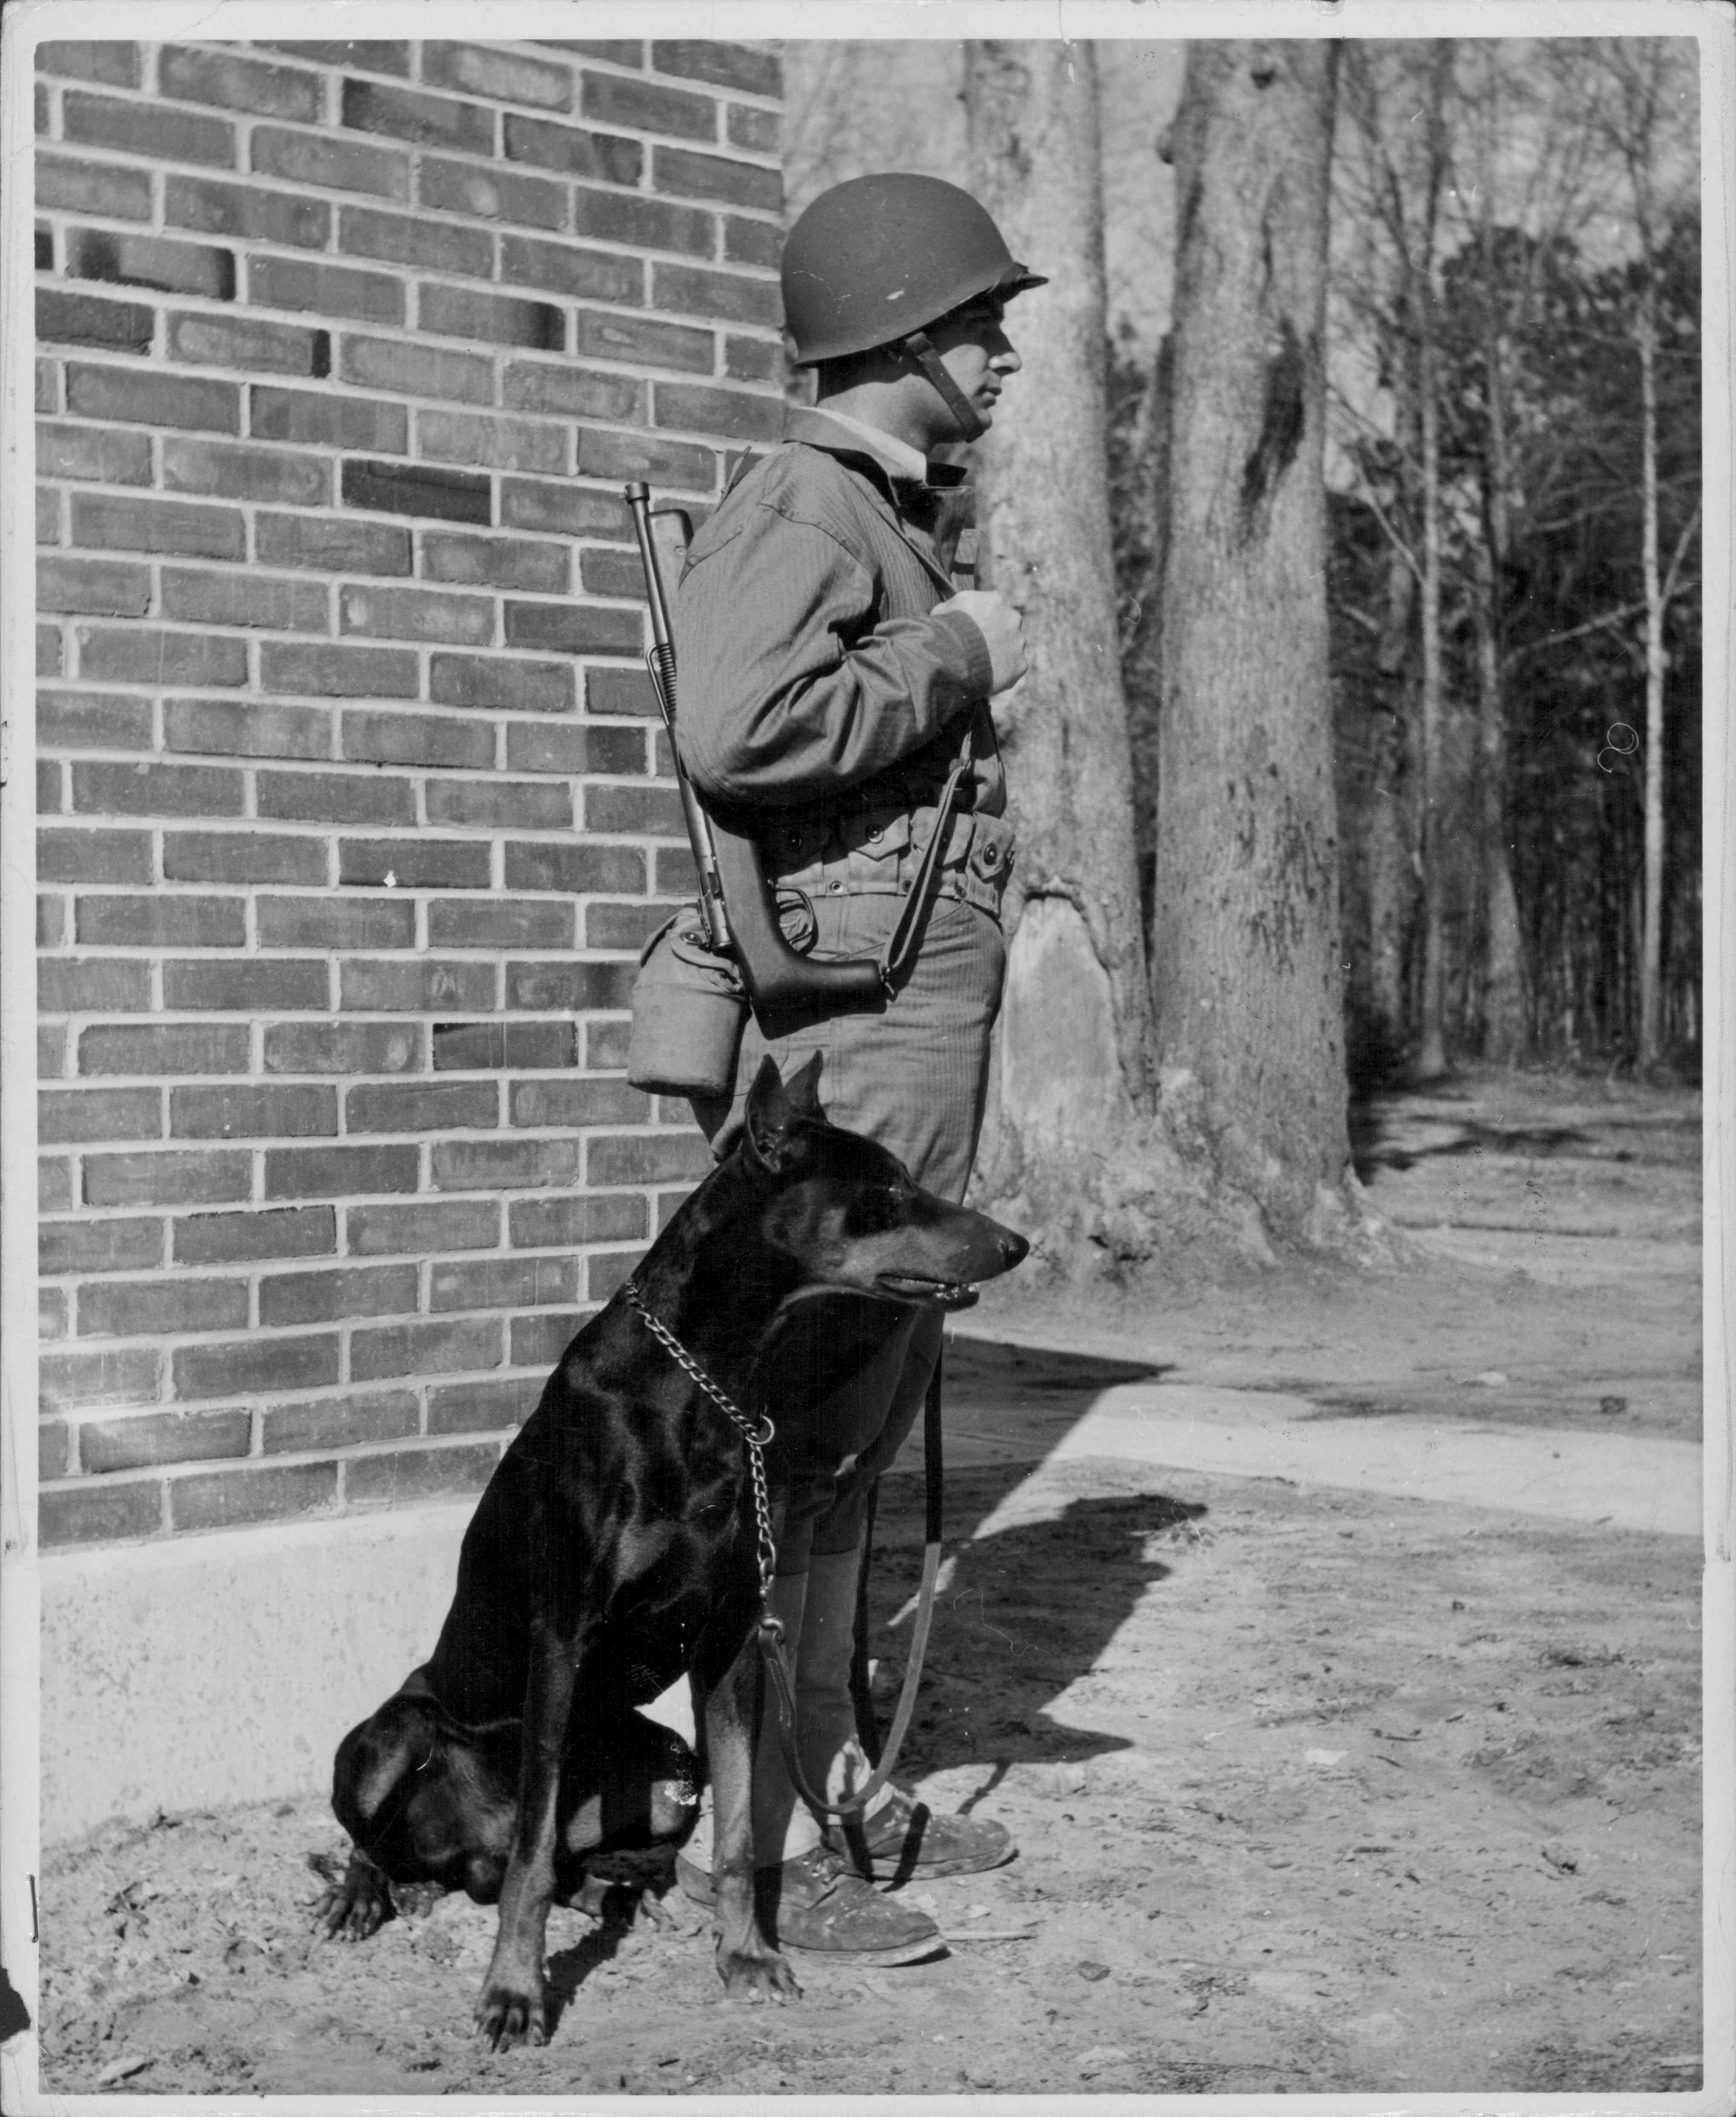 Private 'Jan', an enlisted Doberman, being trained at Marine Corps Base Camp Lejeune during World War Two, North Carolina, USA, circa 1941-1945.